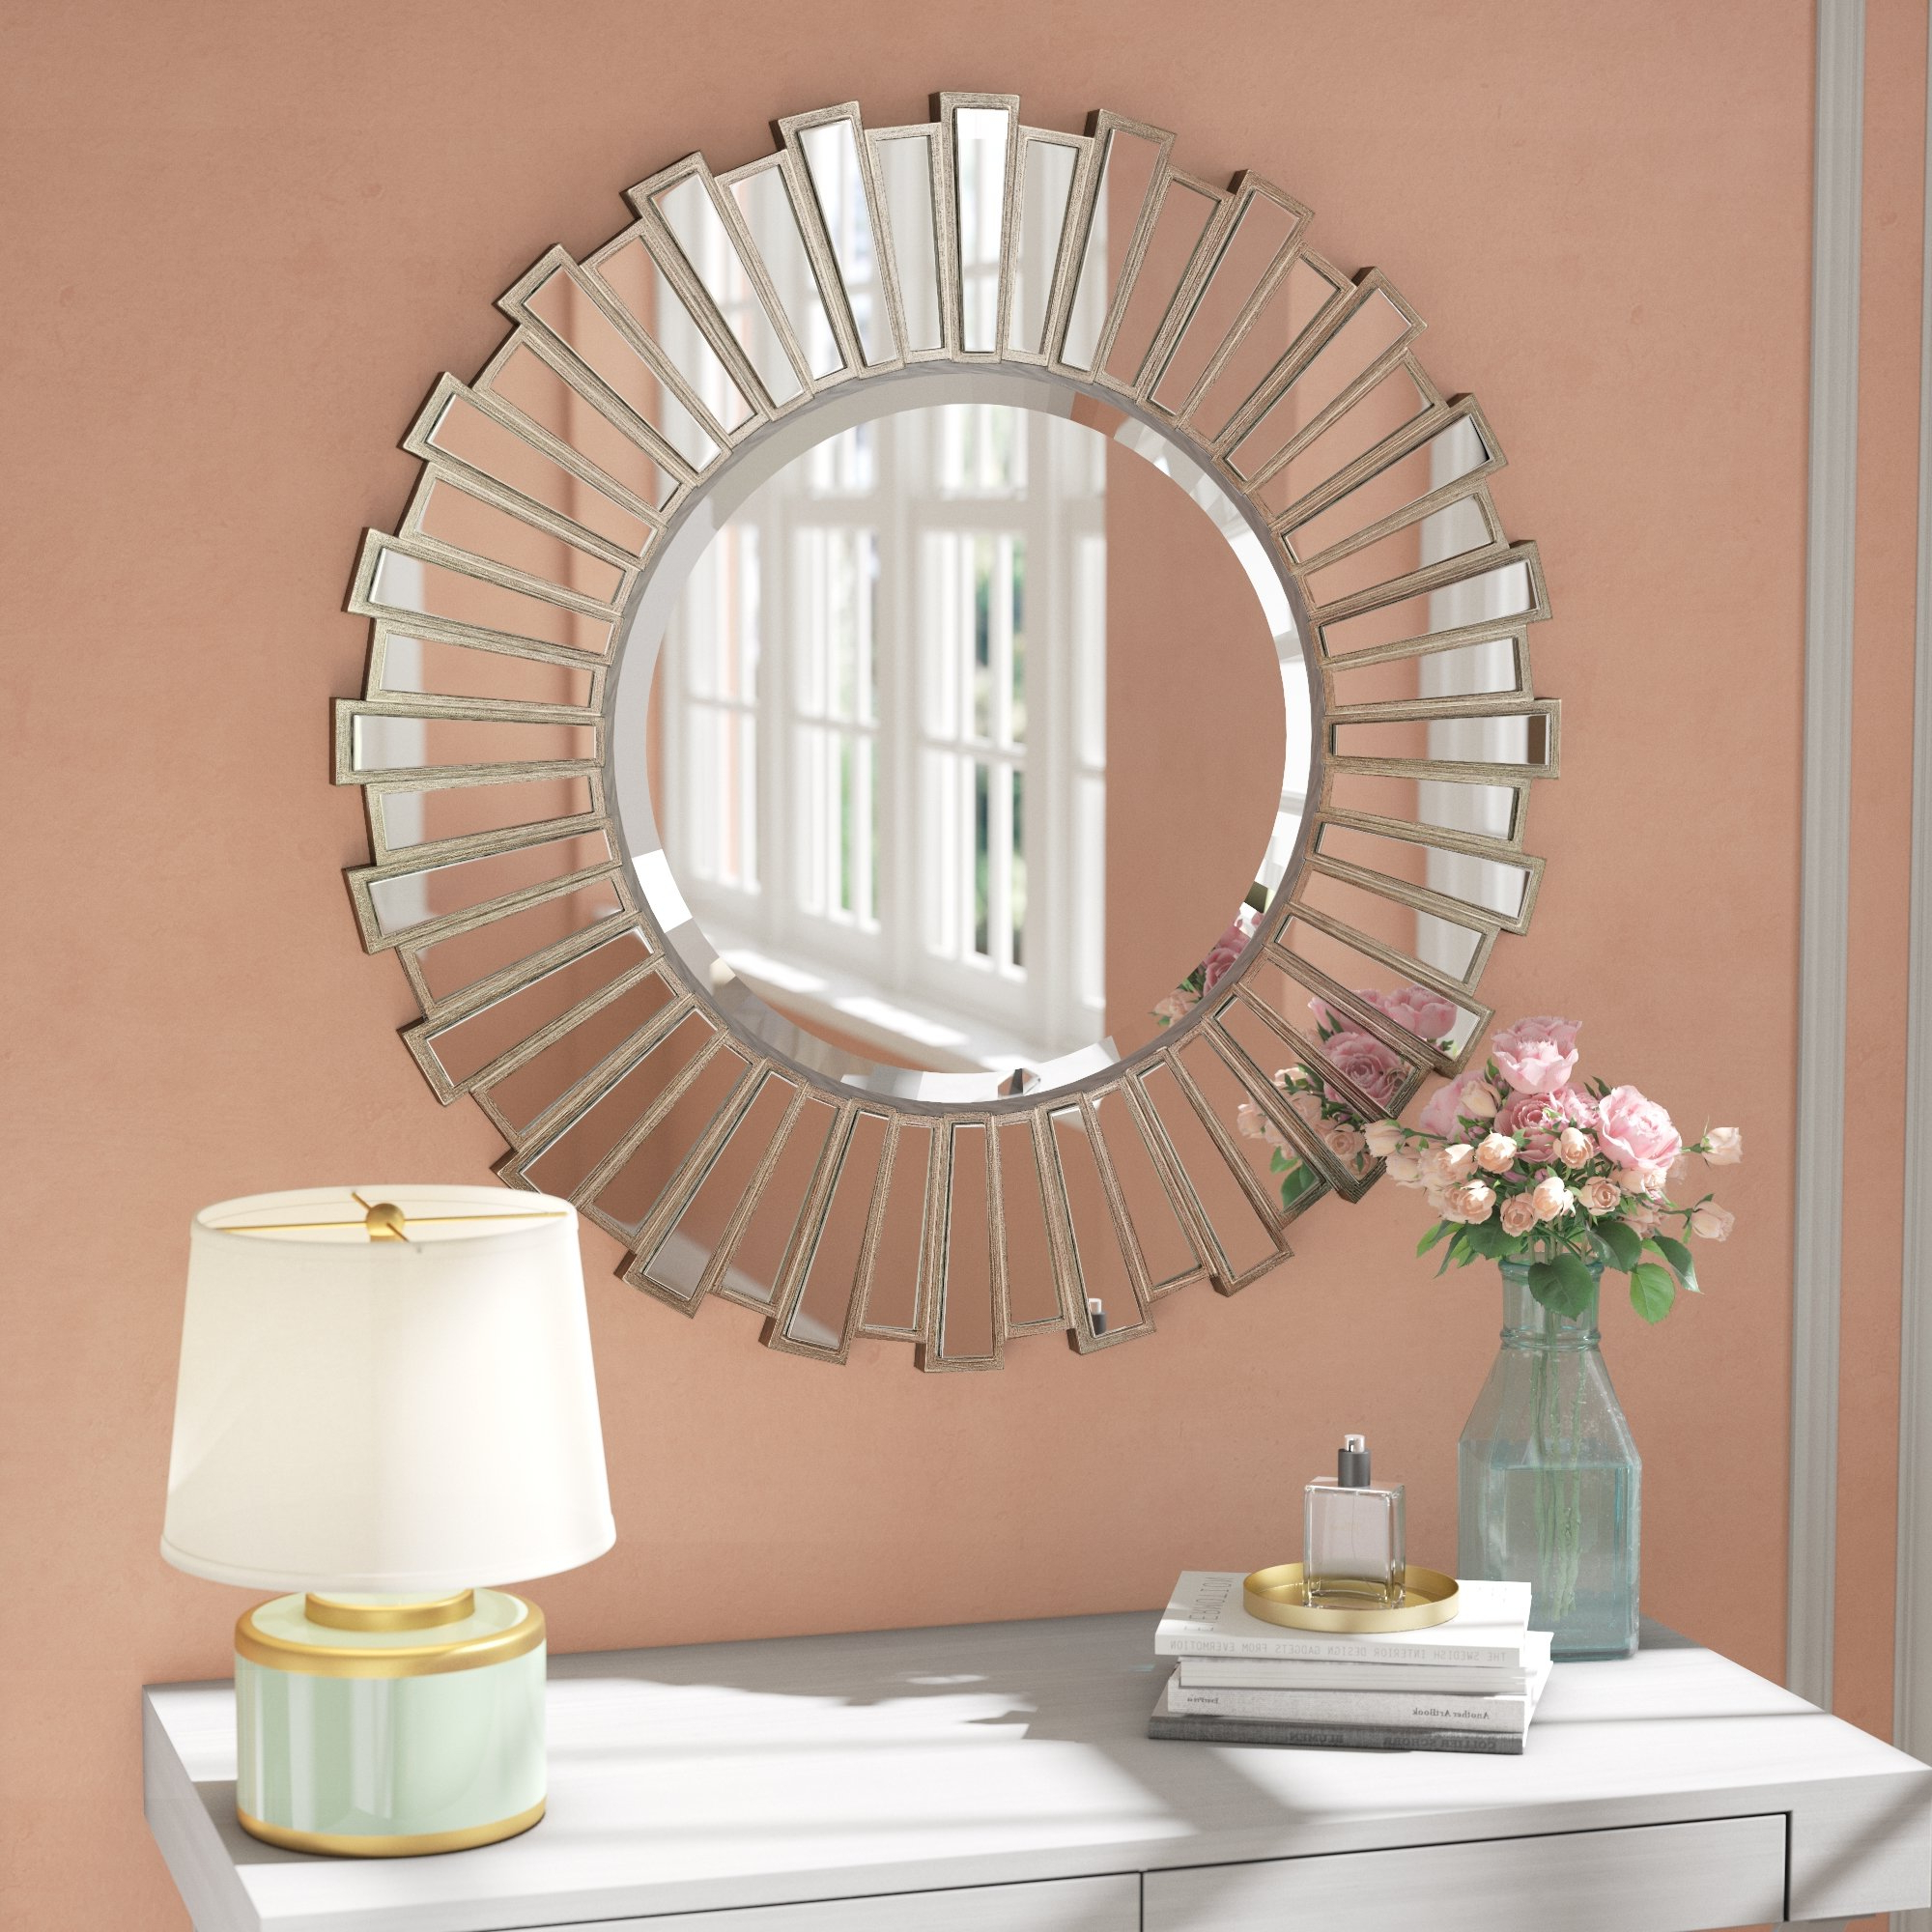 Willa Arlo Interiors Bertrand Sunburst Resin Accent Wall Mirror Pertaining To Favorite Starburst Wall Decor By Willa Arlo Interiors (View 20 of 20)